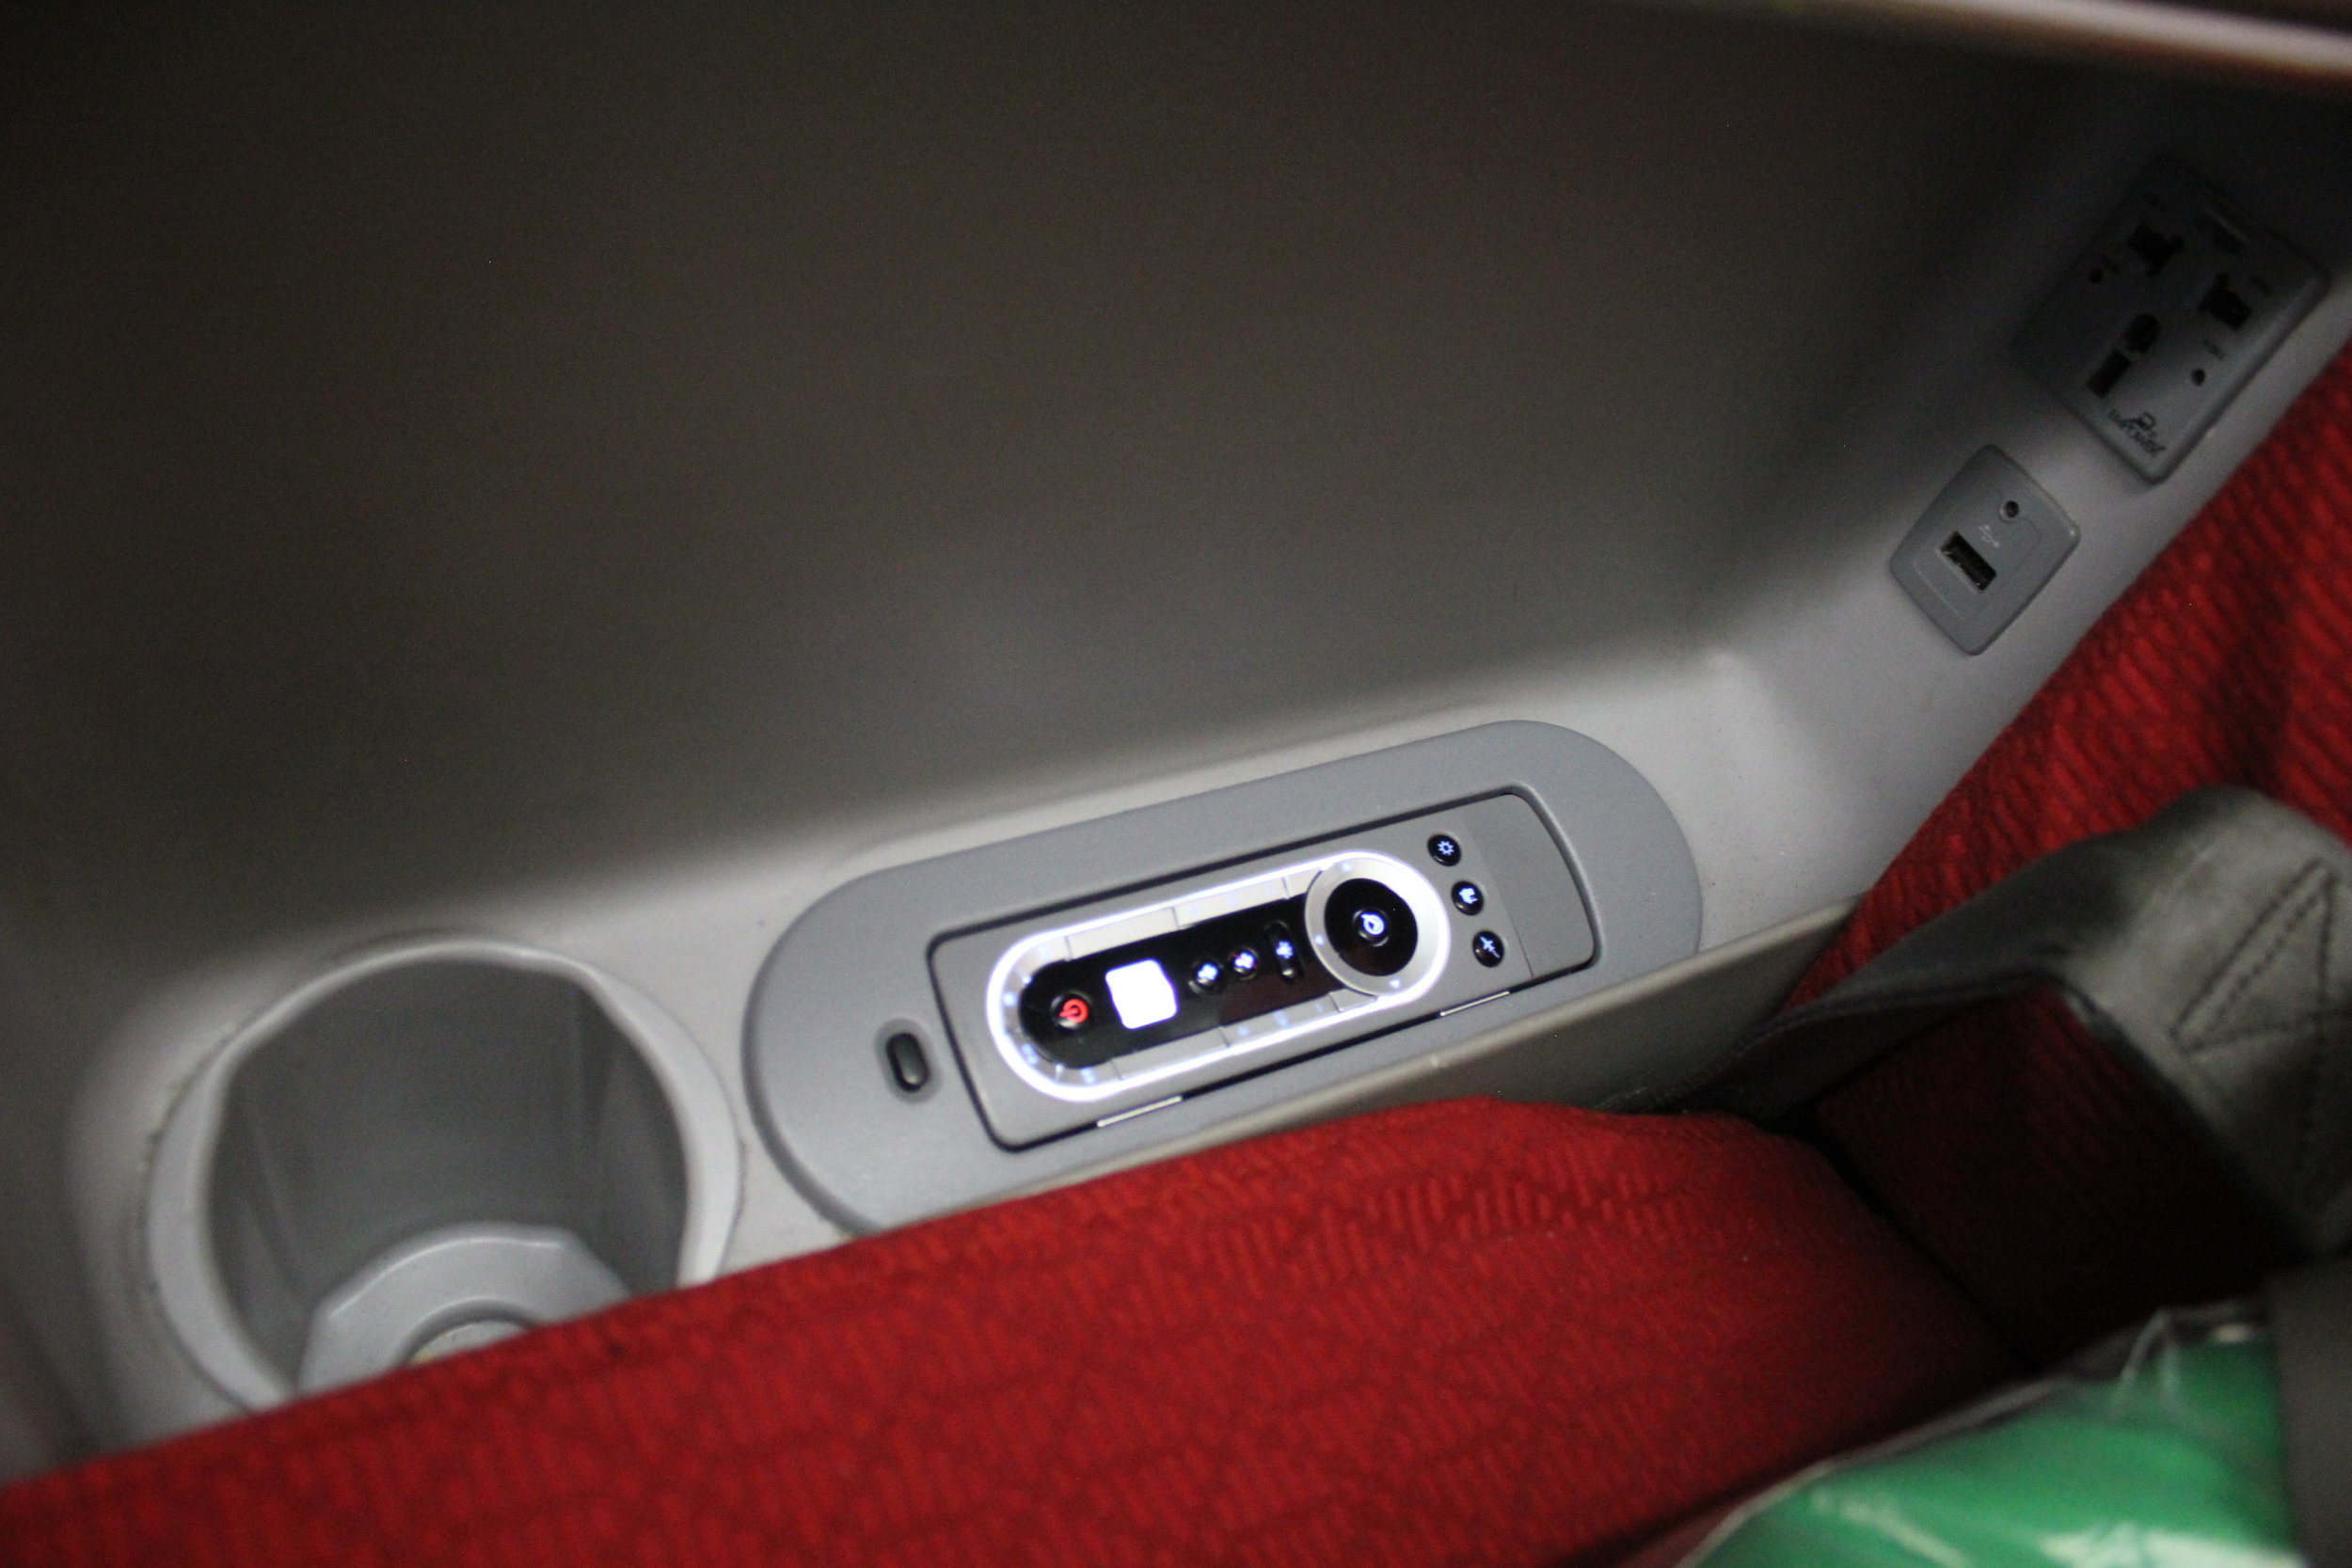 Ethiopian Airlines business class – Seat features